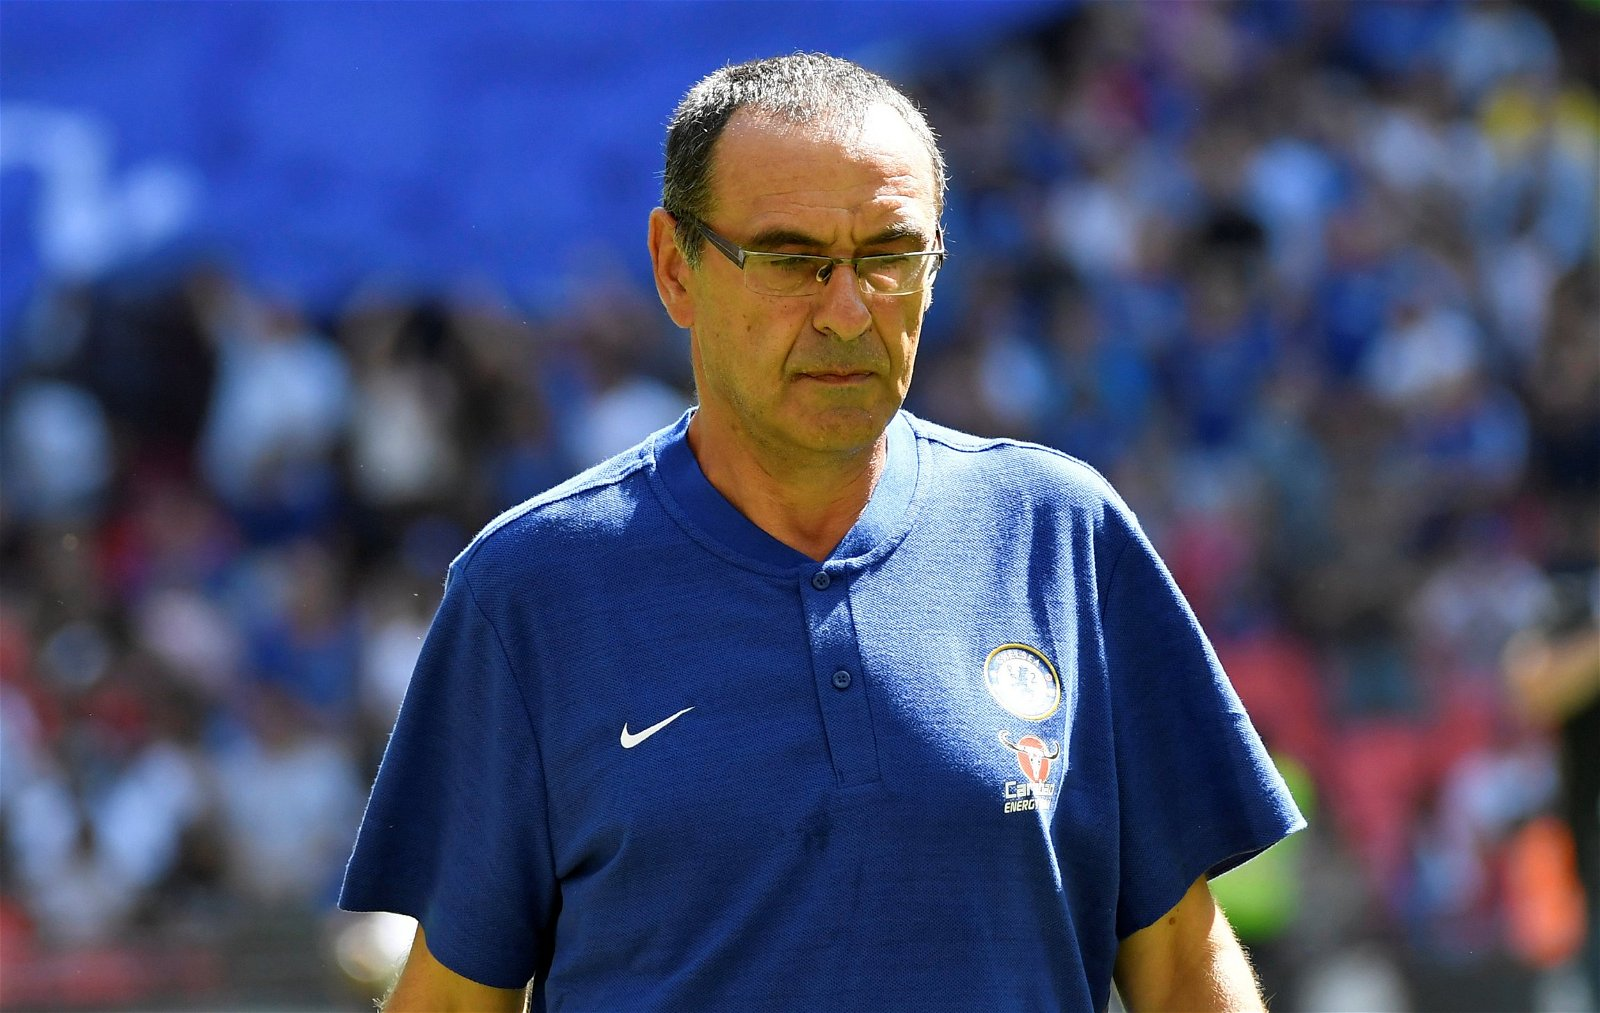 Maurizio Sarri on the touchline at the Community Shield